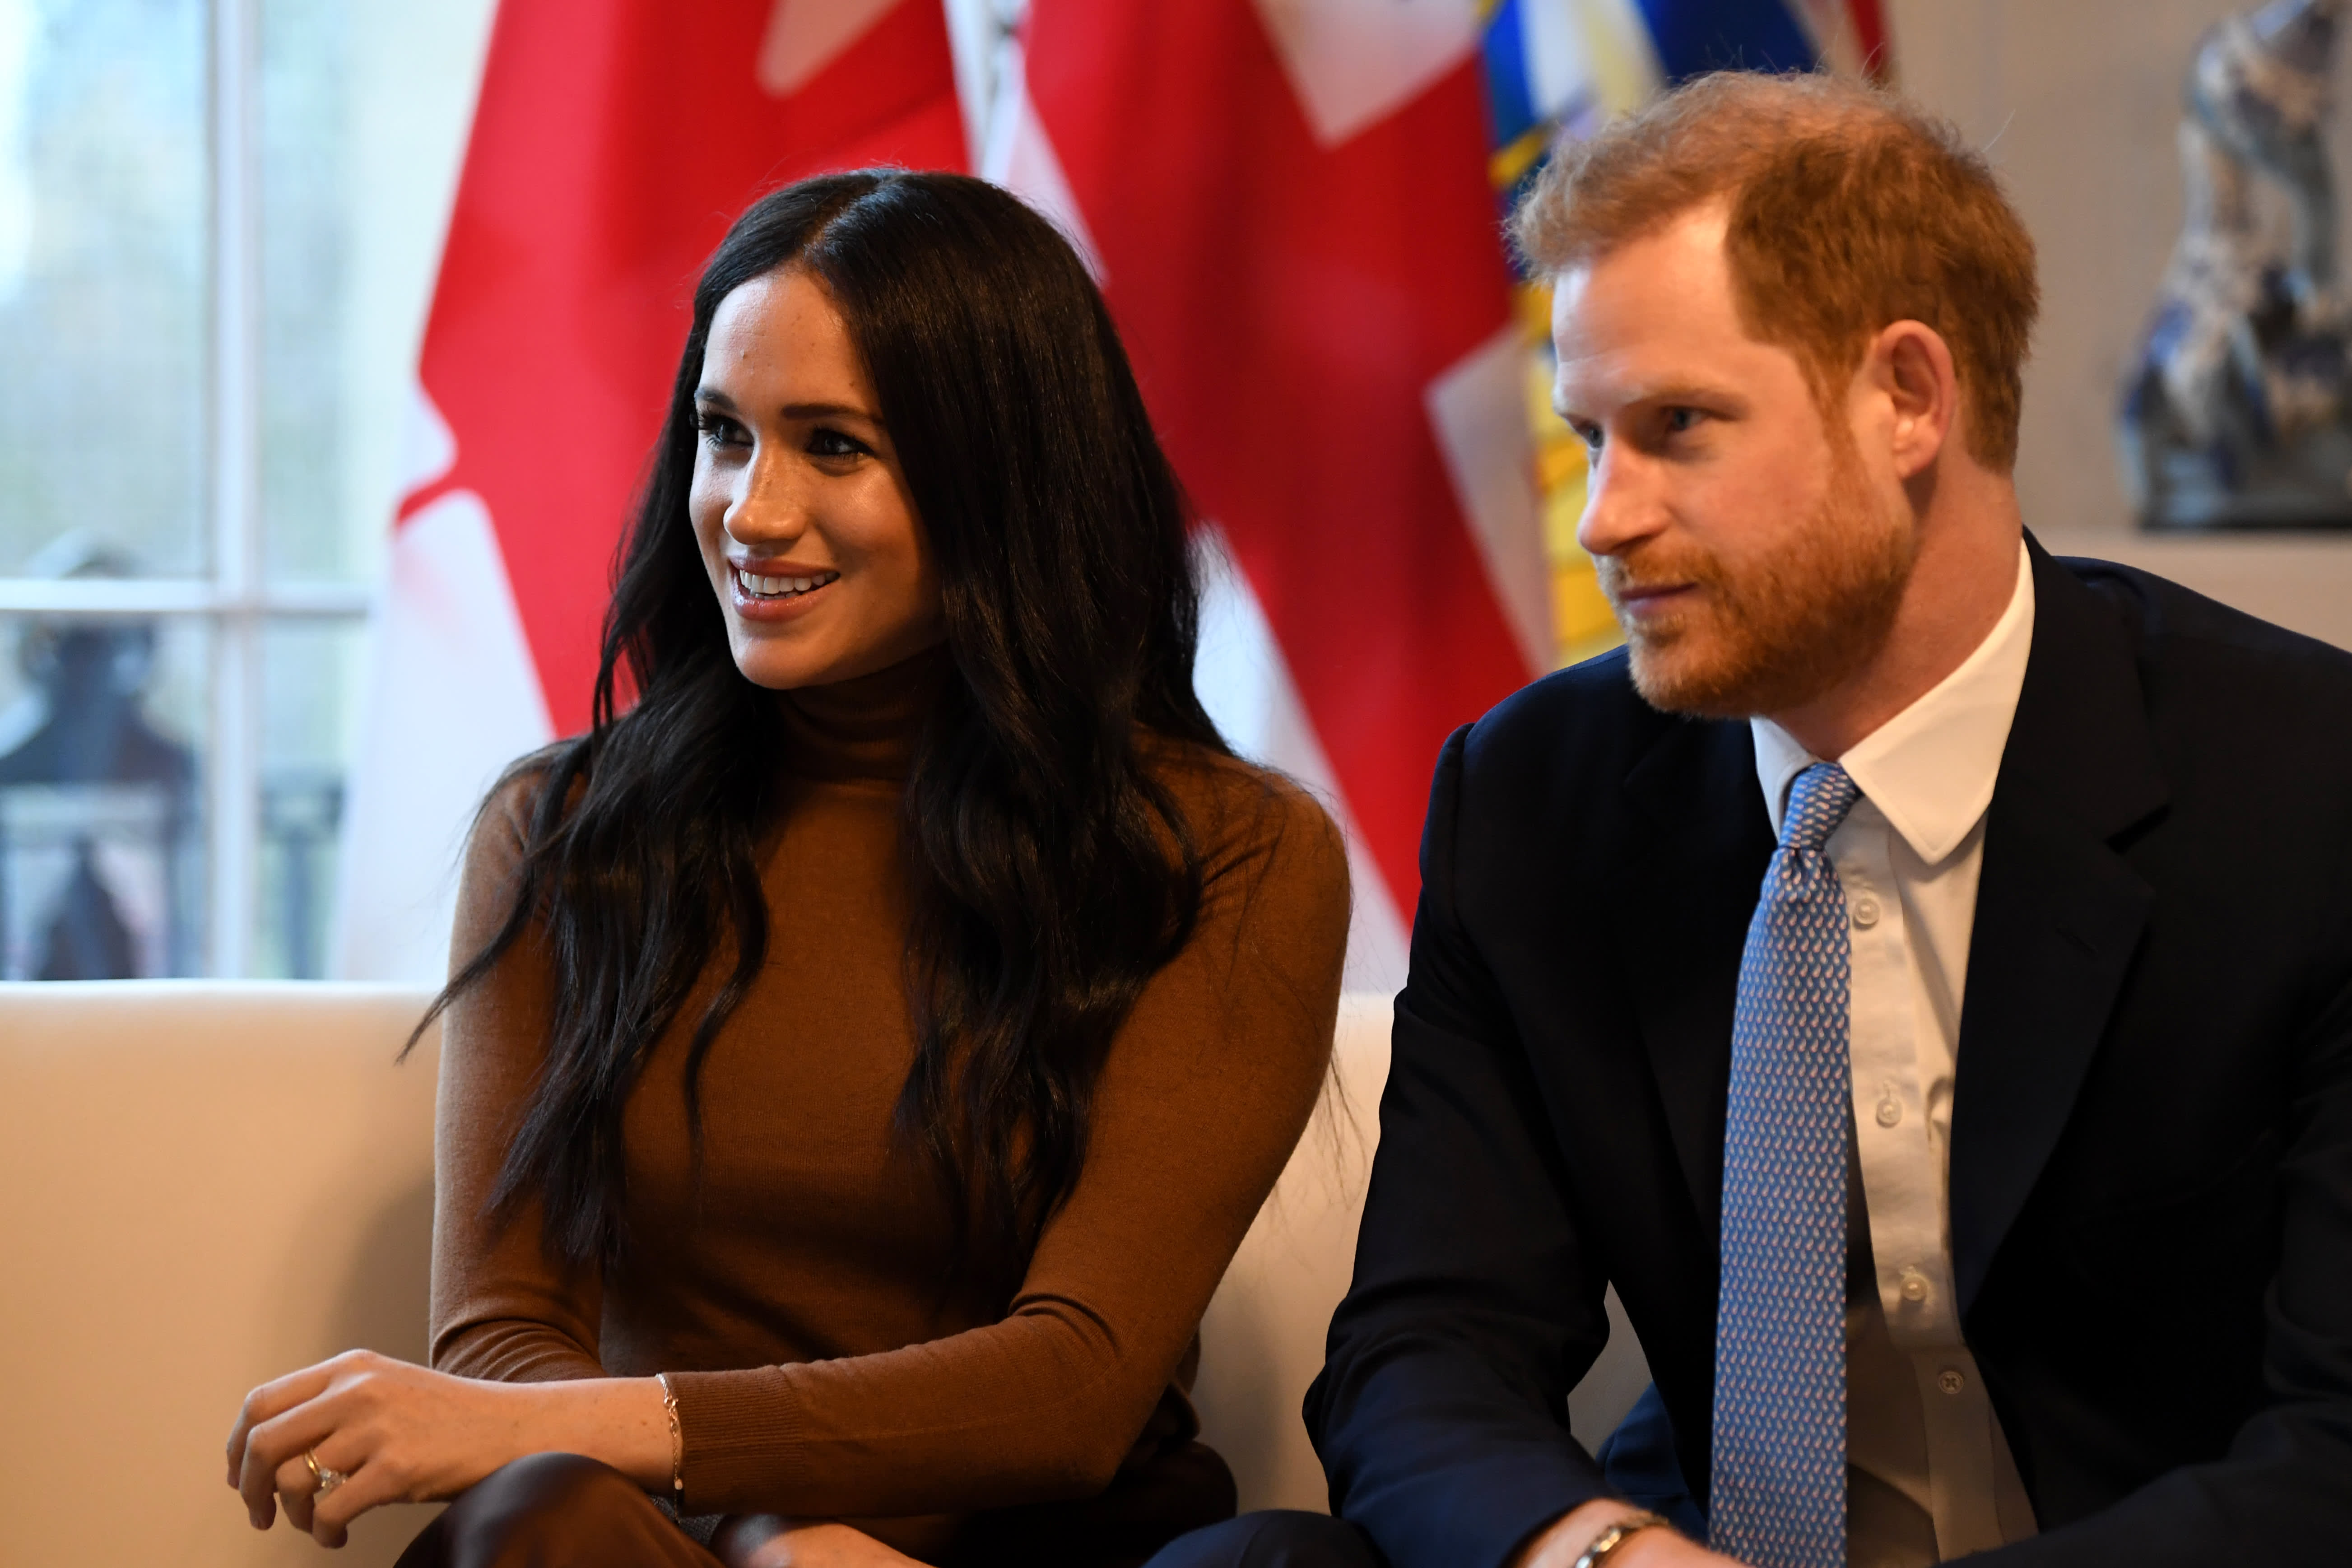 Prince Harry and Meghan Markle will no longer use 'royal highness' titles or receive public funds for royal duties